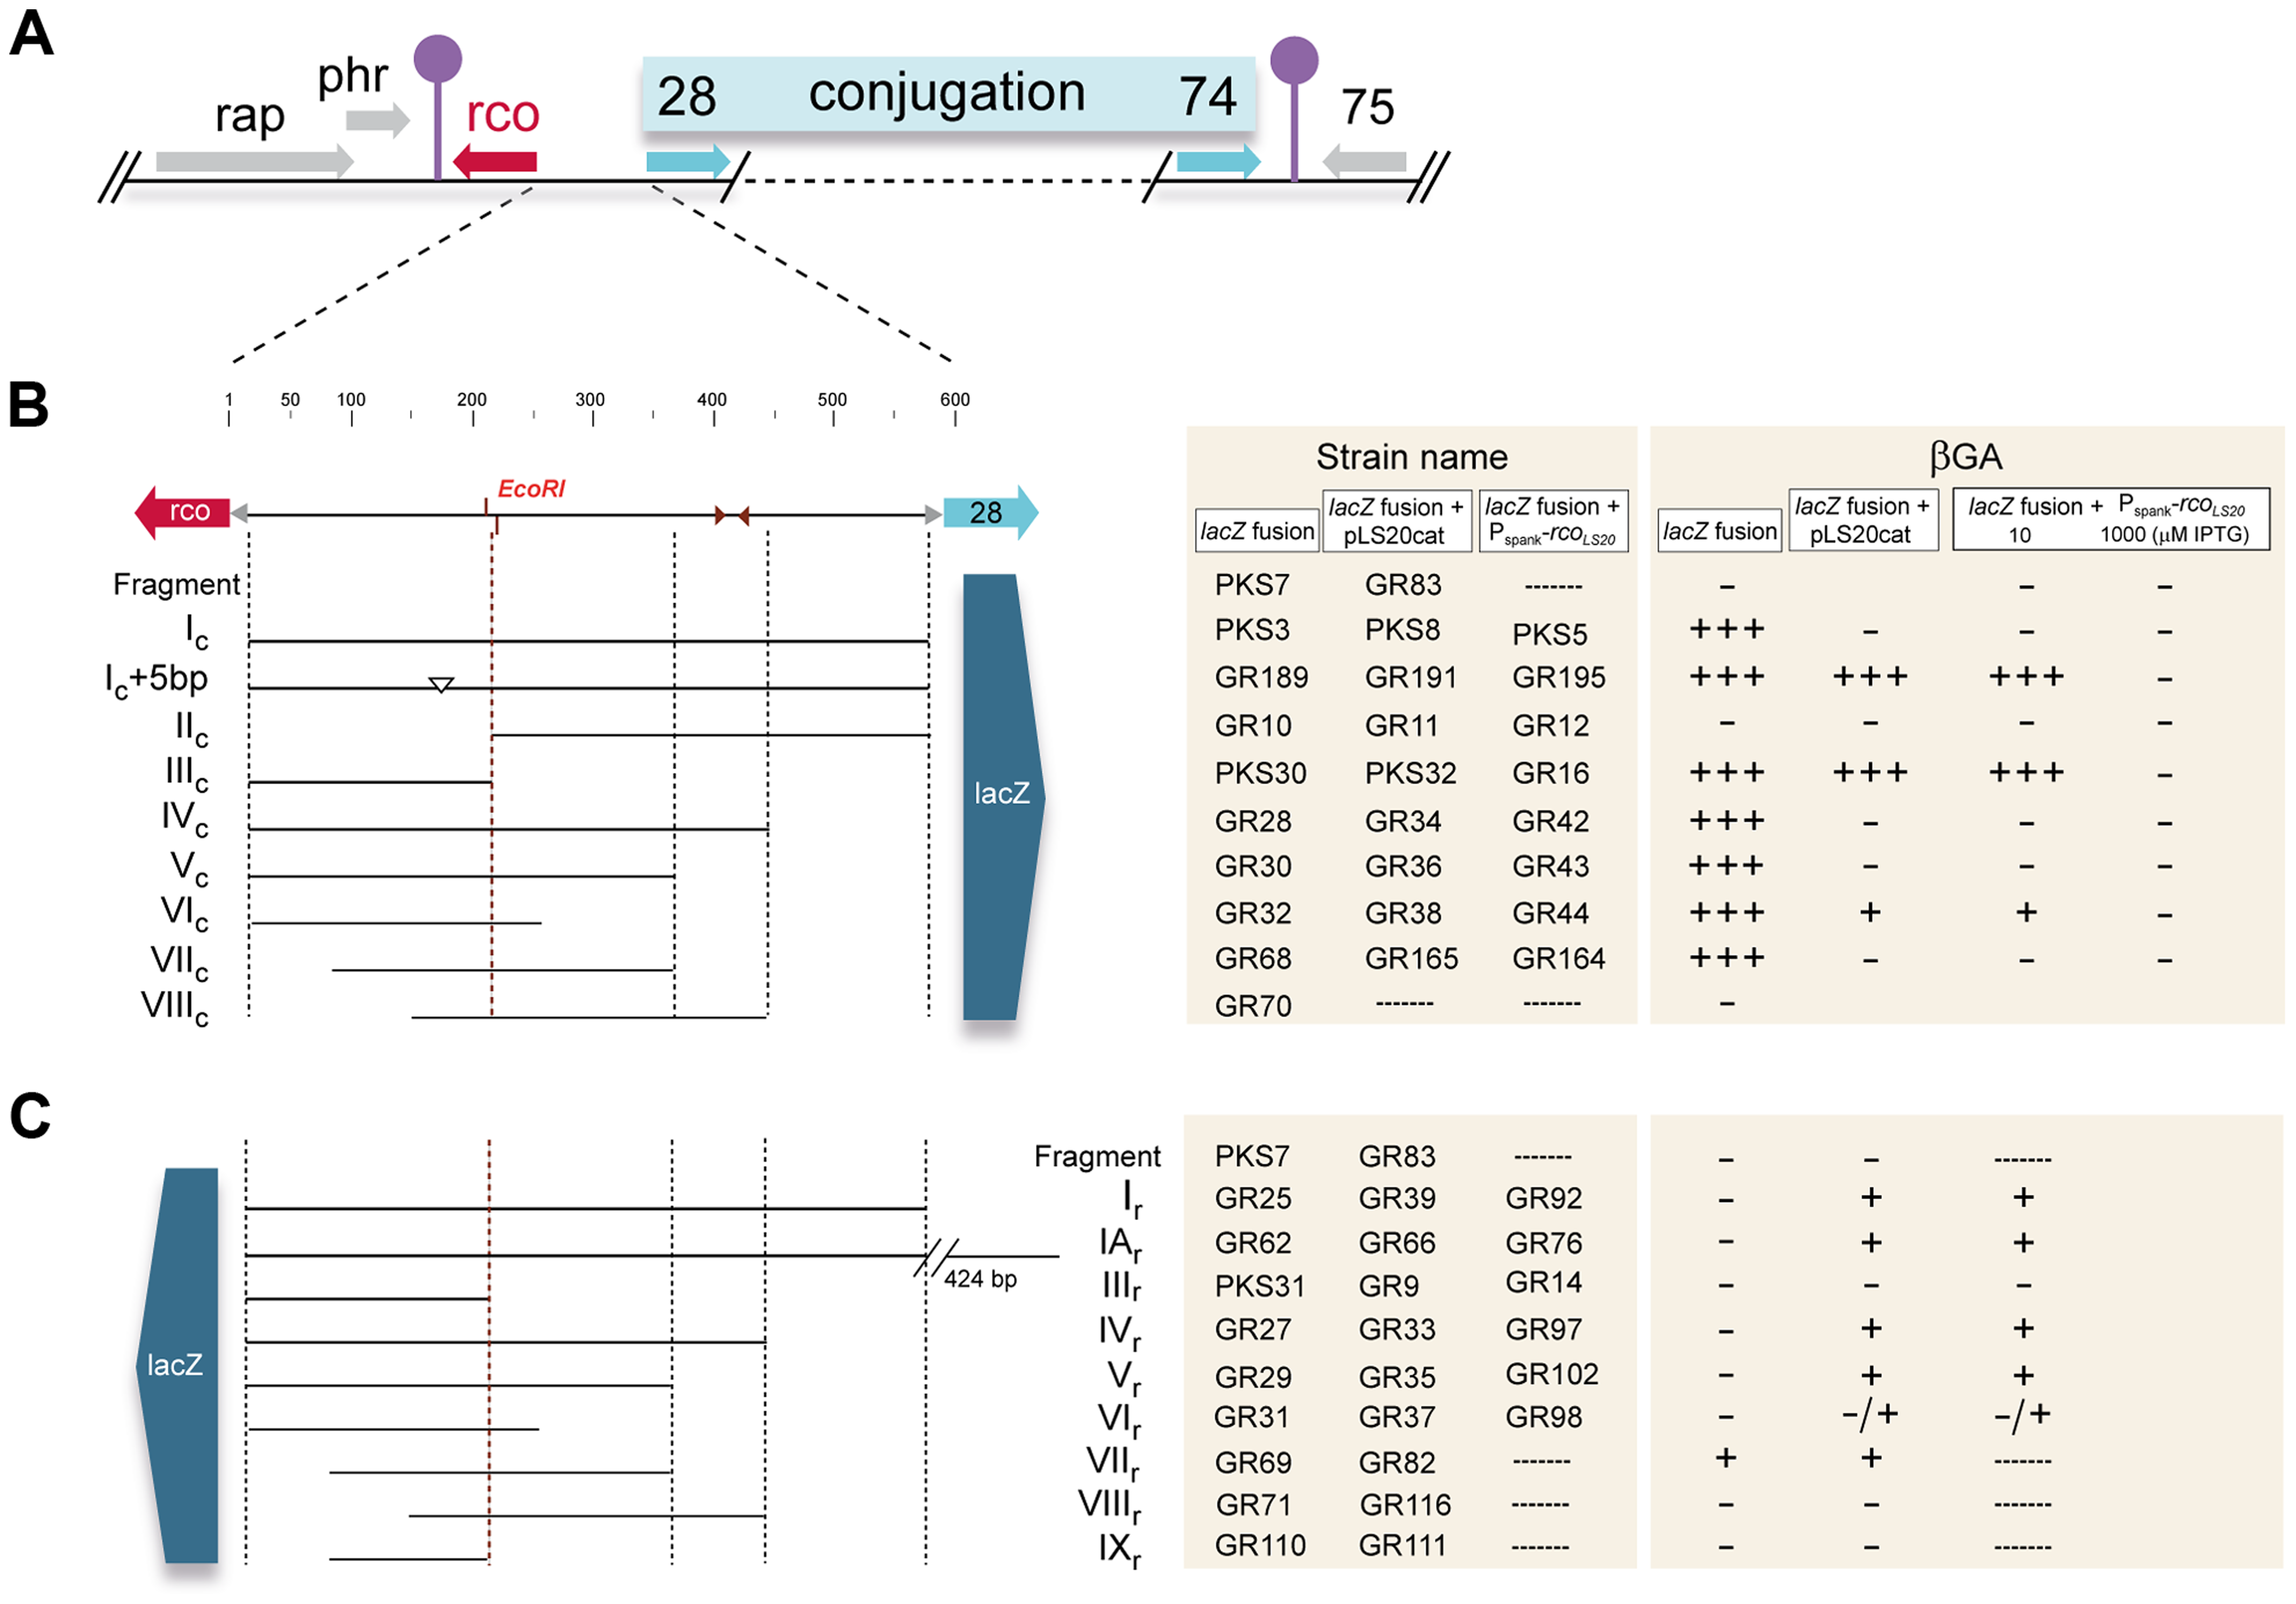 Genetic map of the pLS20cat conjugation region and summary of the transcriptional <i>lacZ</i> fusions used in this study.